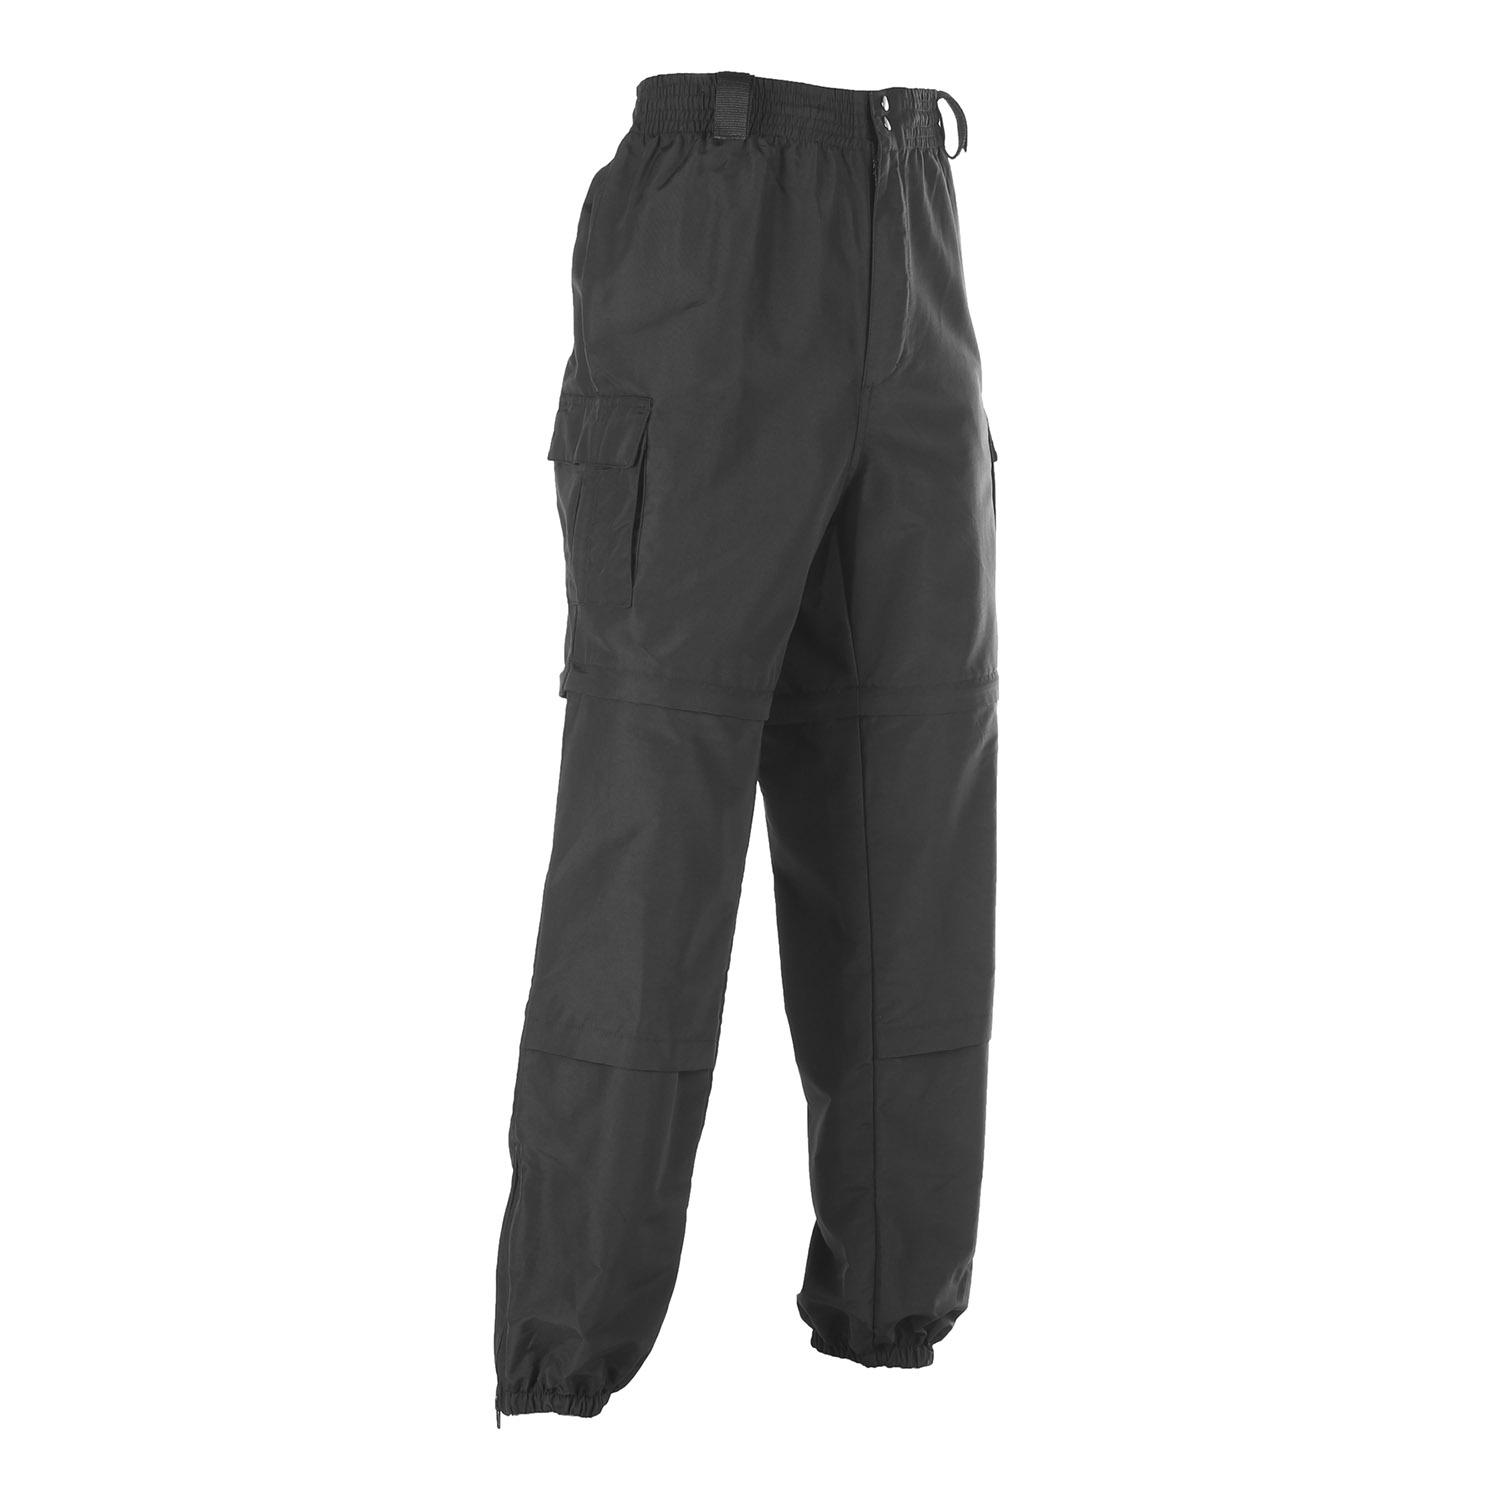 LawPro Deluxe Zip Off Bike Patrol Pants